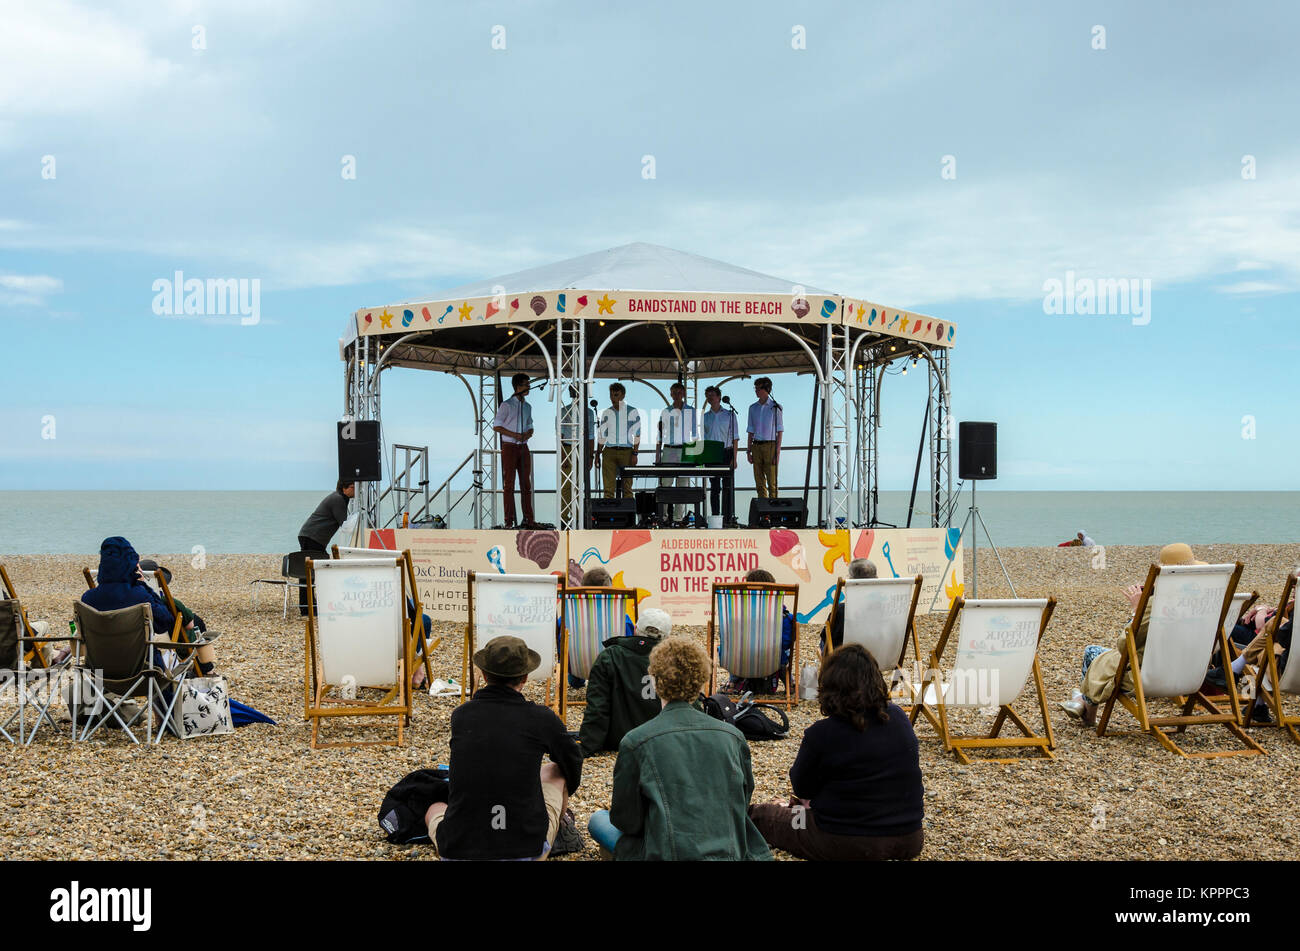 Aldeburgh Festival Bandstand on the Beach, Aldeburgh English coastal town in Suffolk, UK - Stock Image